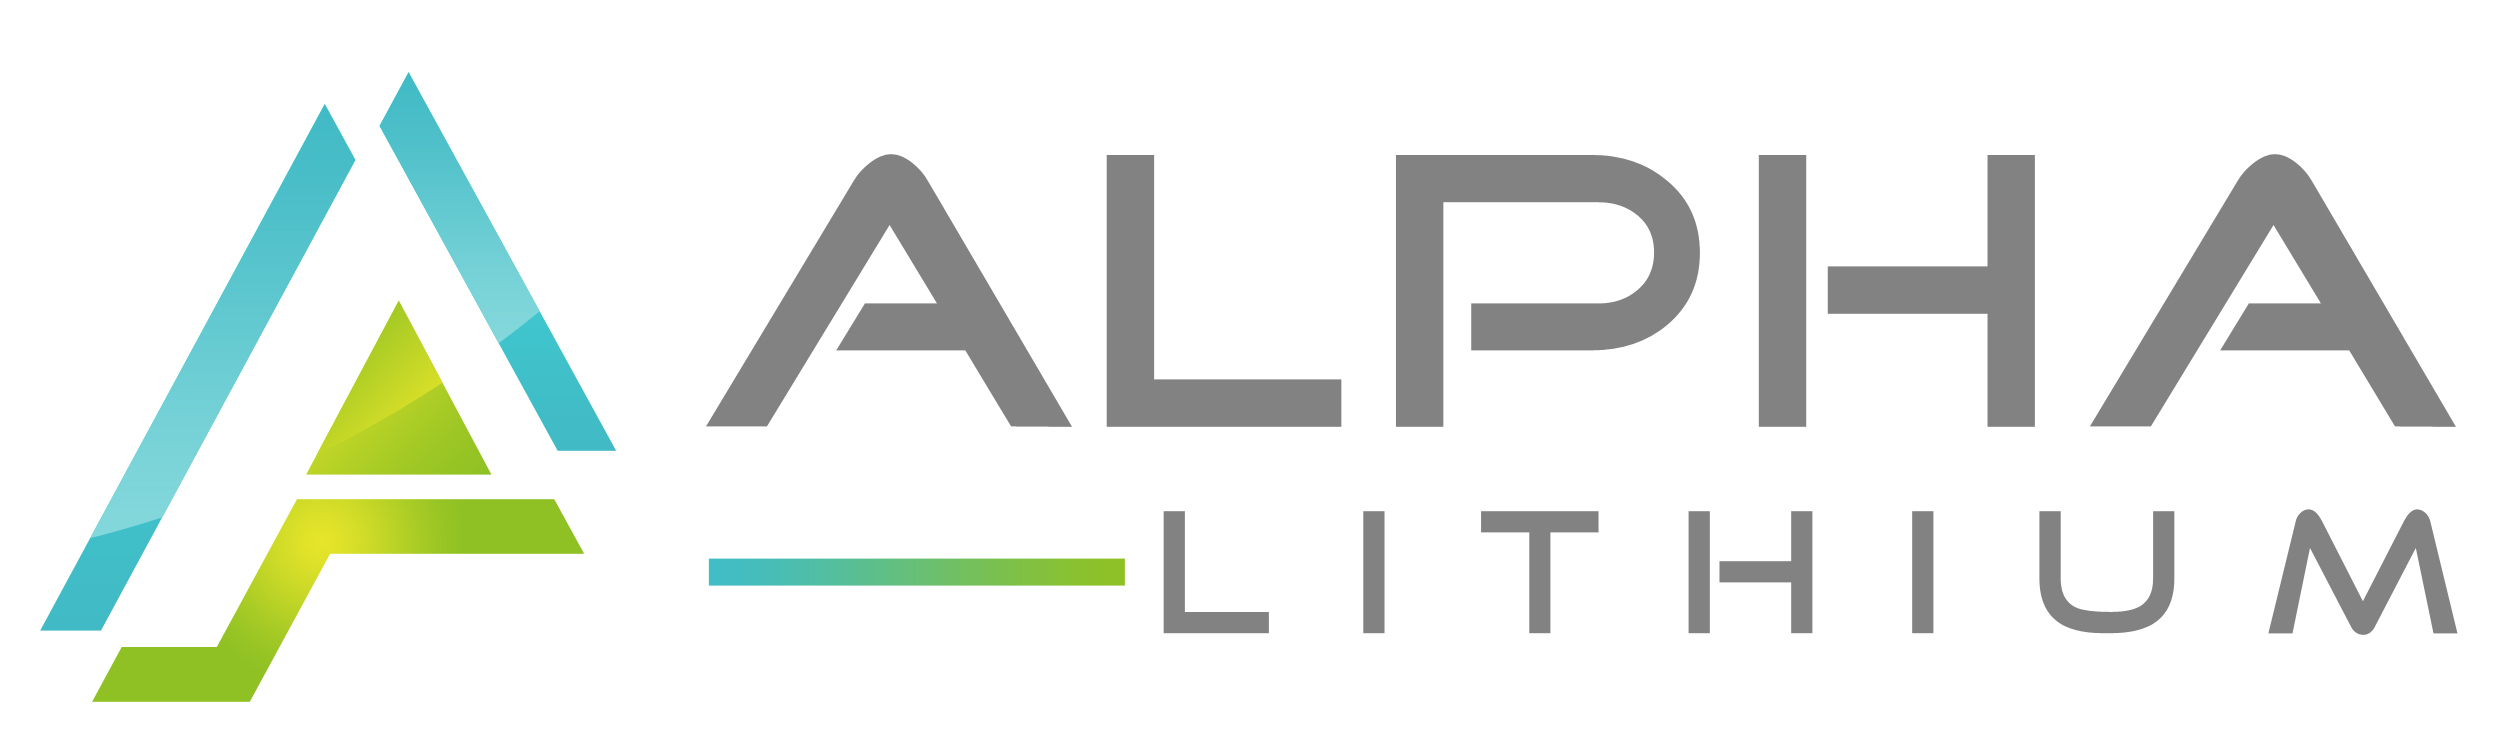 Alpha Lithium Adds Second Rig and Accelerates Drilling Program at Tolillar Lithium Project in Argentina